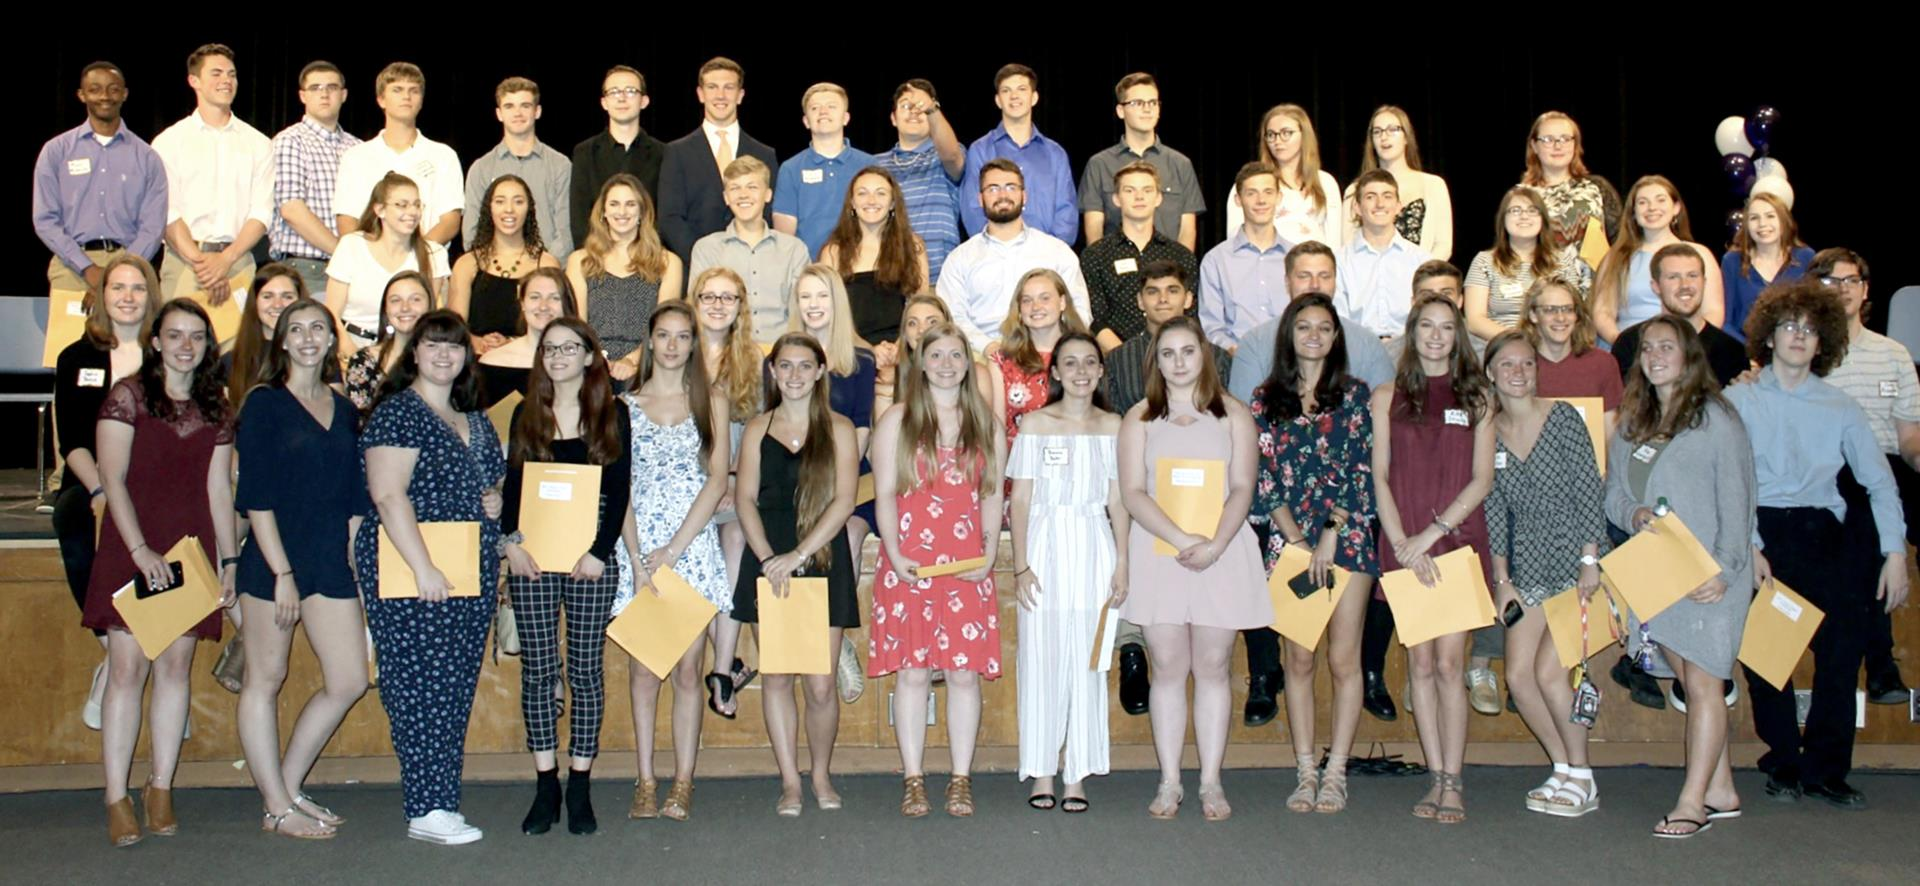 Norwich Dollars for Scholars recipients 2019